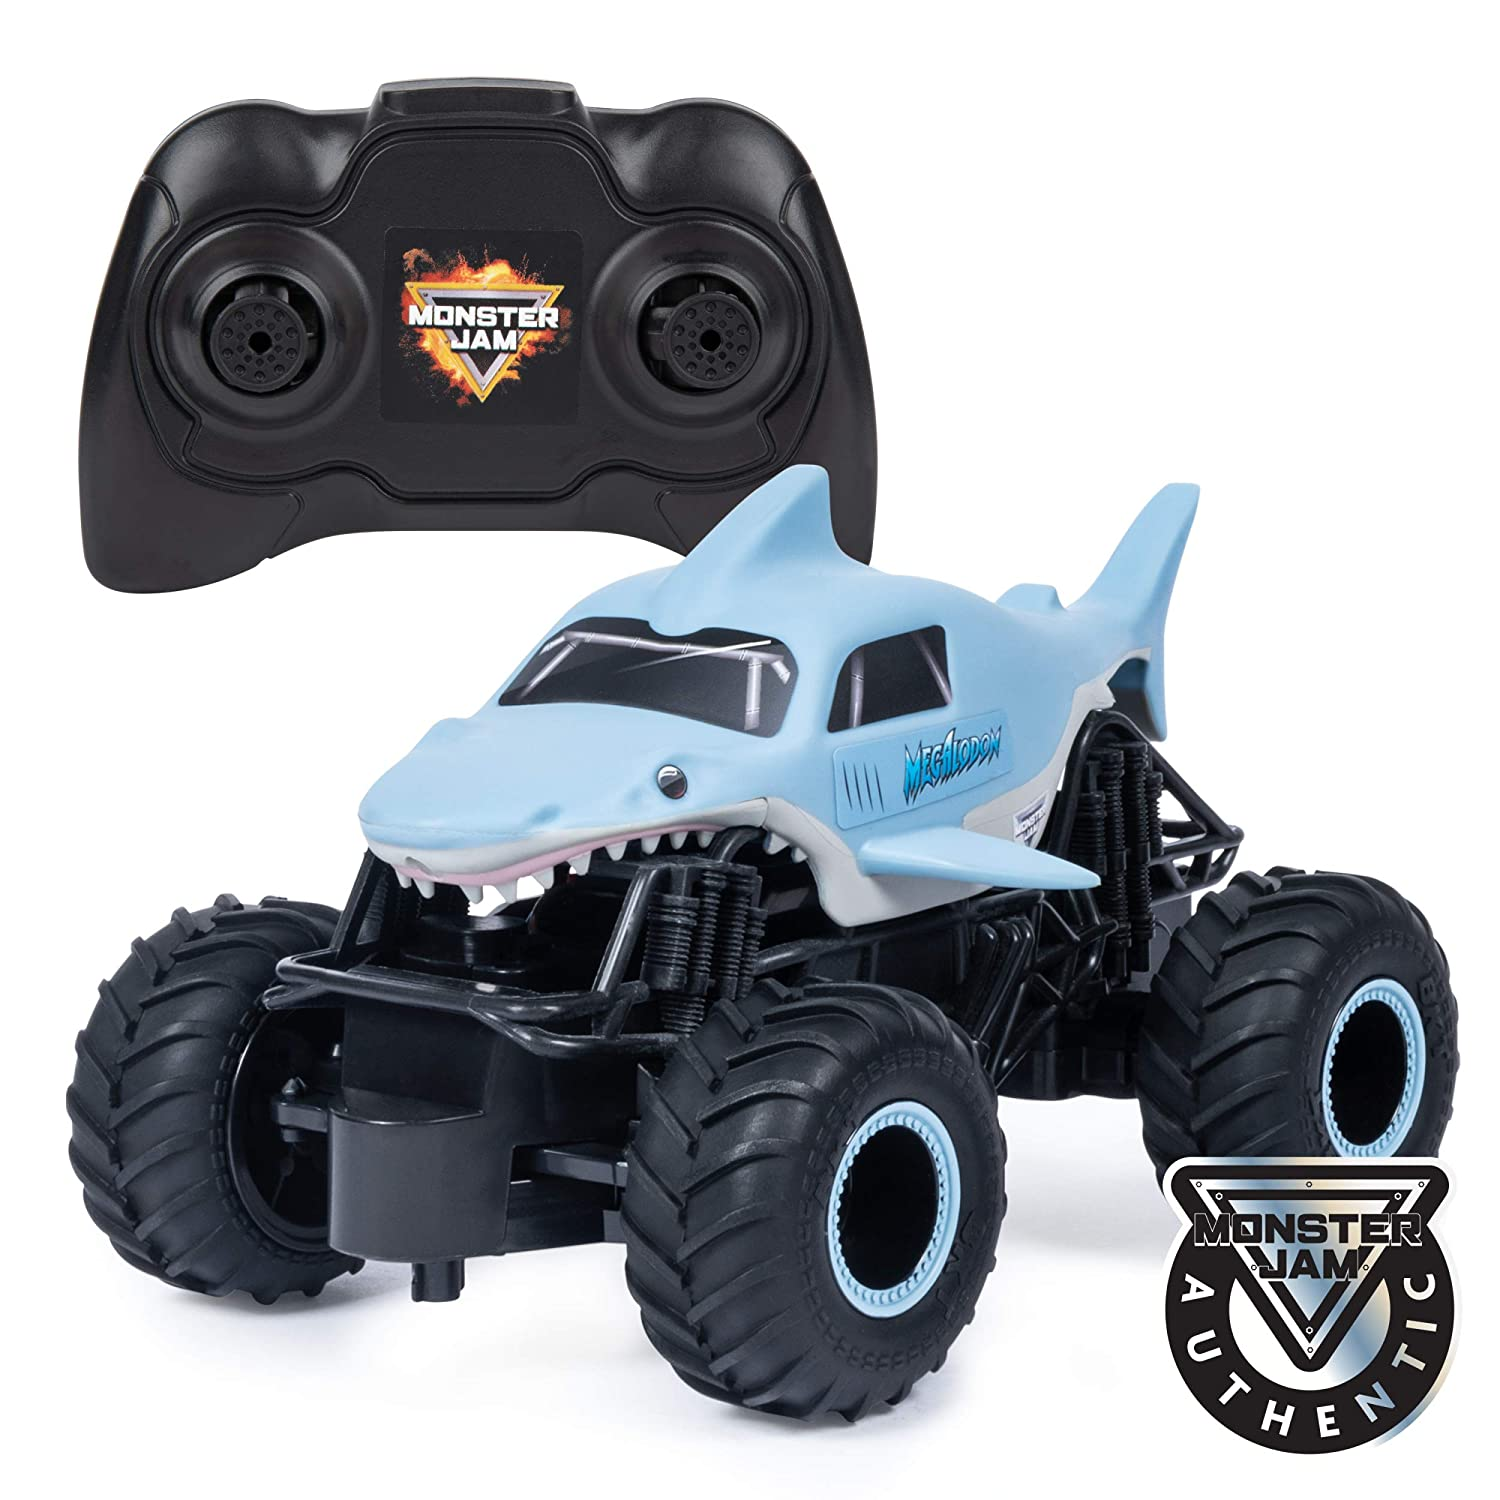 Monster Jam Official Megalodon Remote Control Monster Truck, 1:24 Scale, 2.4 GHz